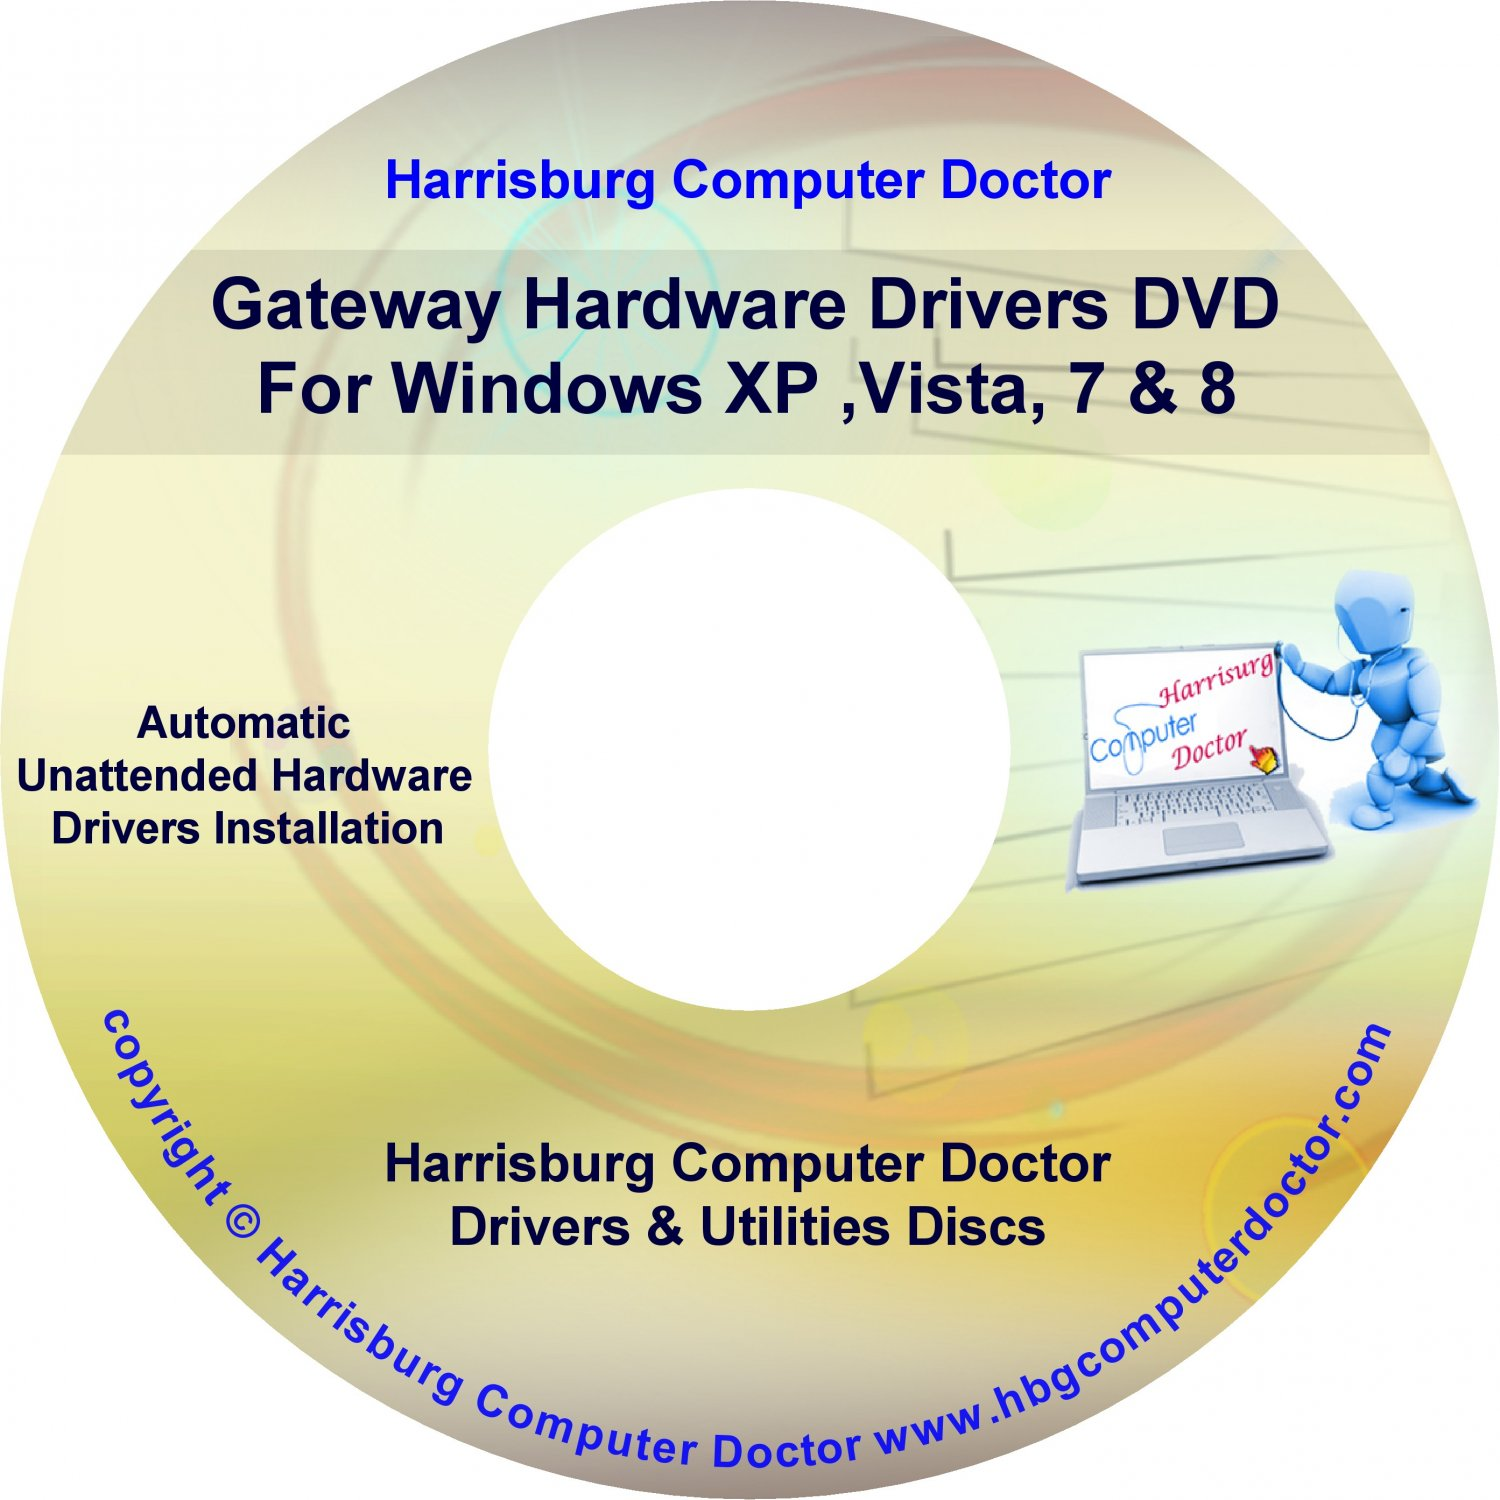 Gateway MX6448 Drivers DVD For Windows, XP, Vista, 7 & 8